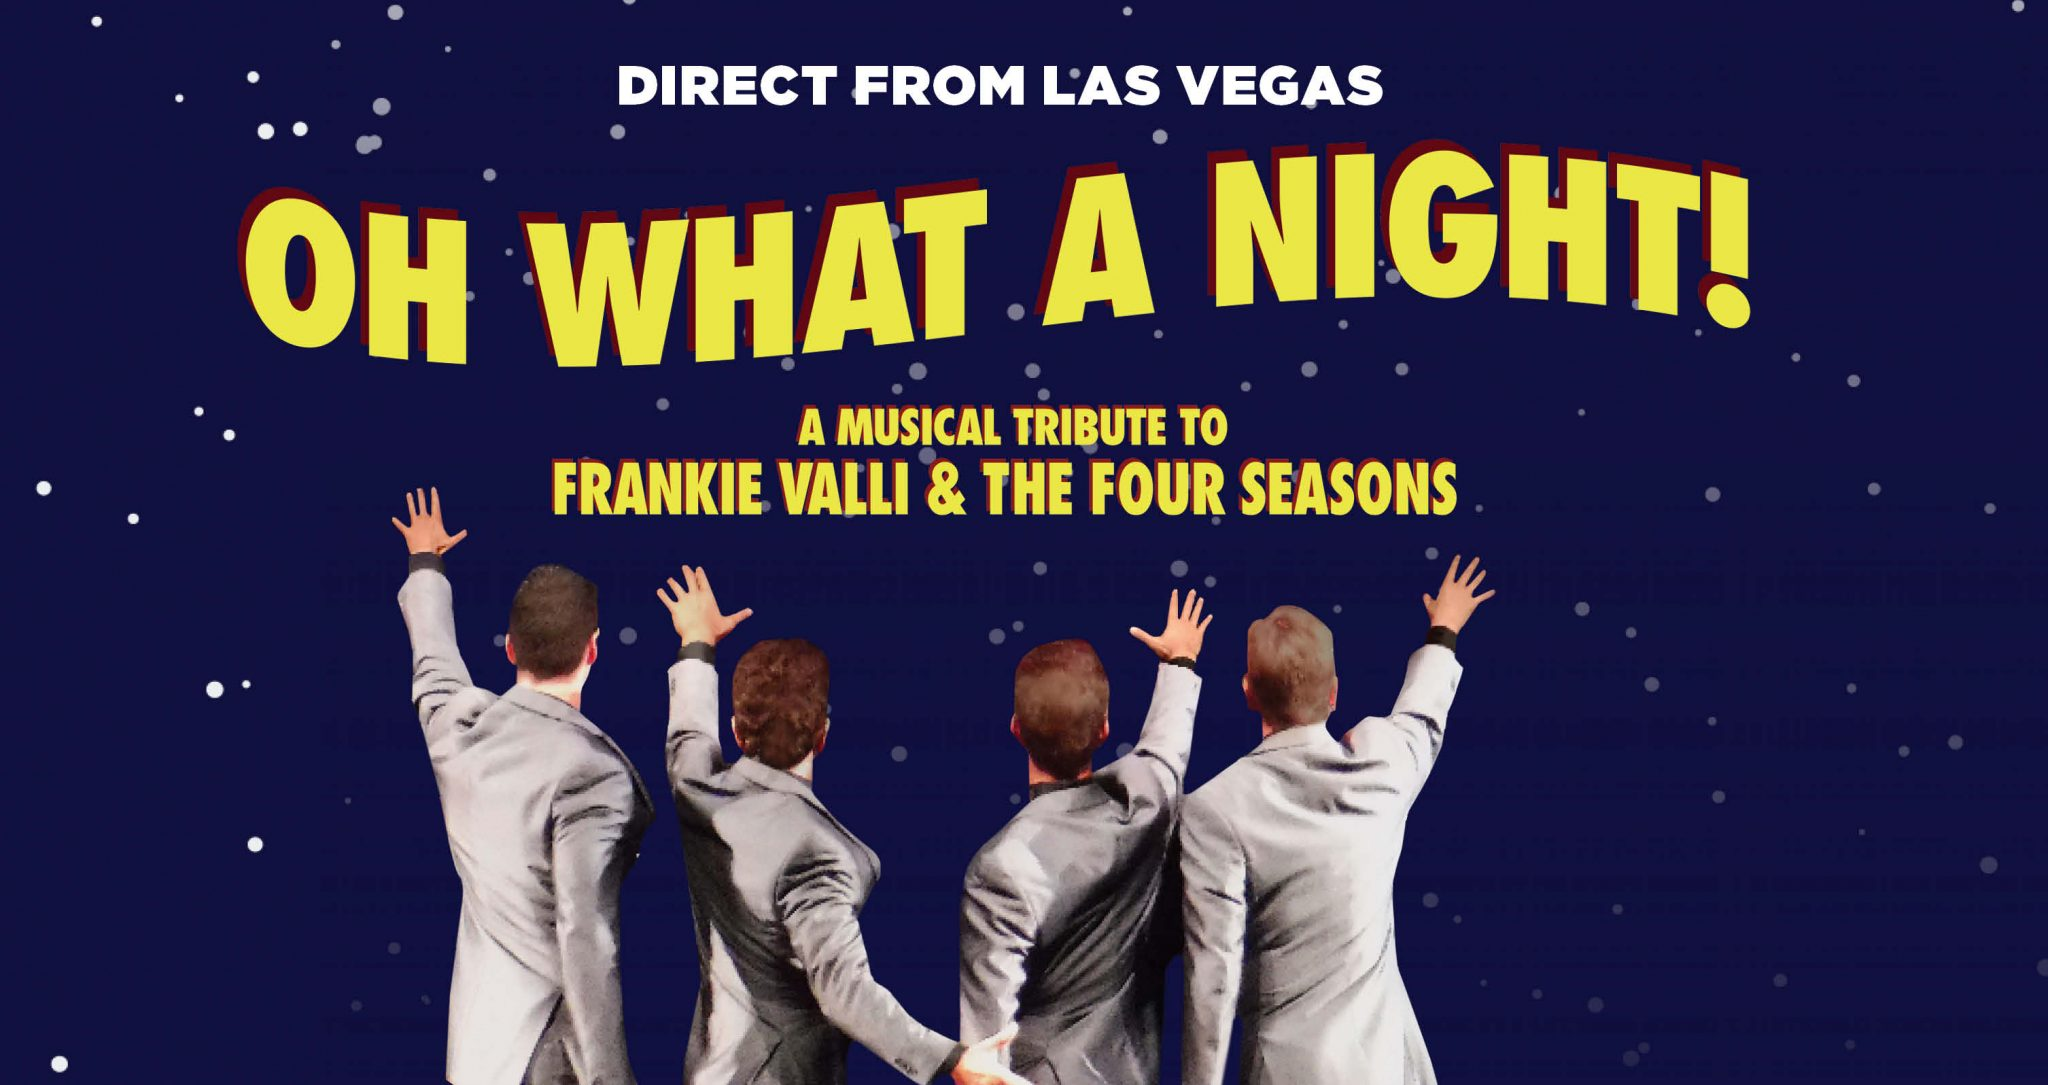 OH WHAT A NIGHT, A TRIBUTE TO FRANKIE VALLI & THE FOUR SEASONS